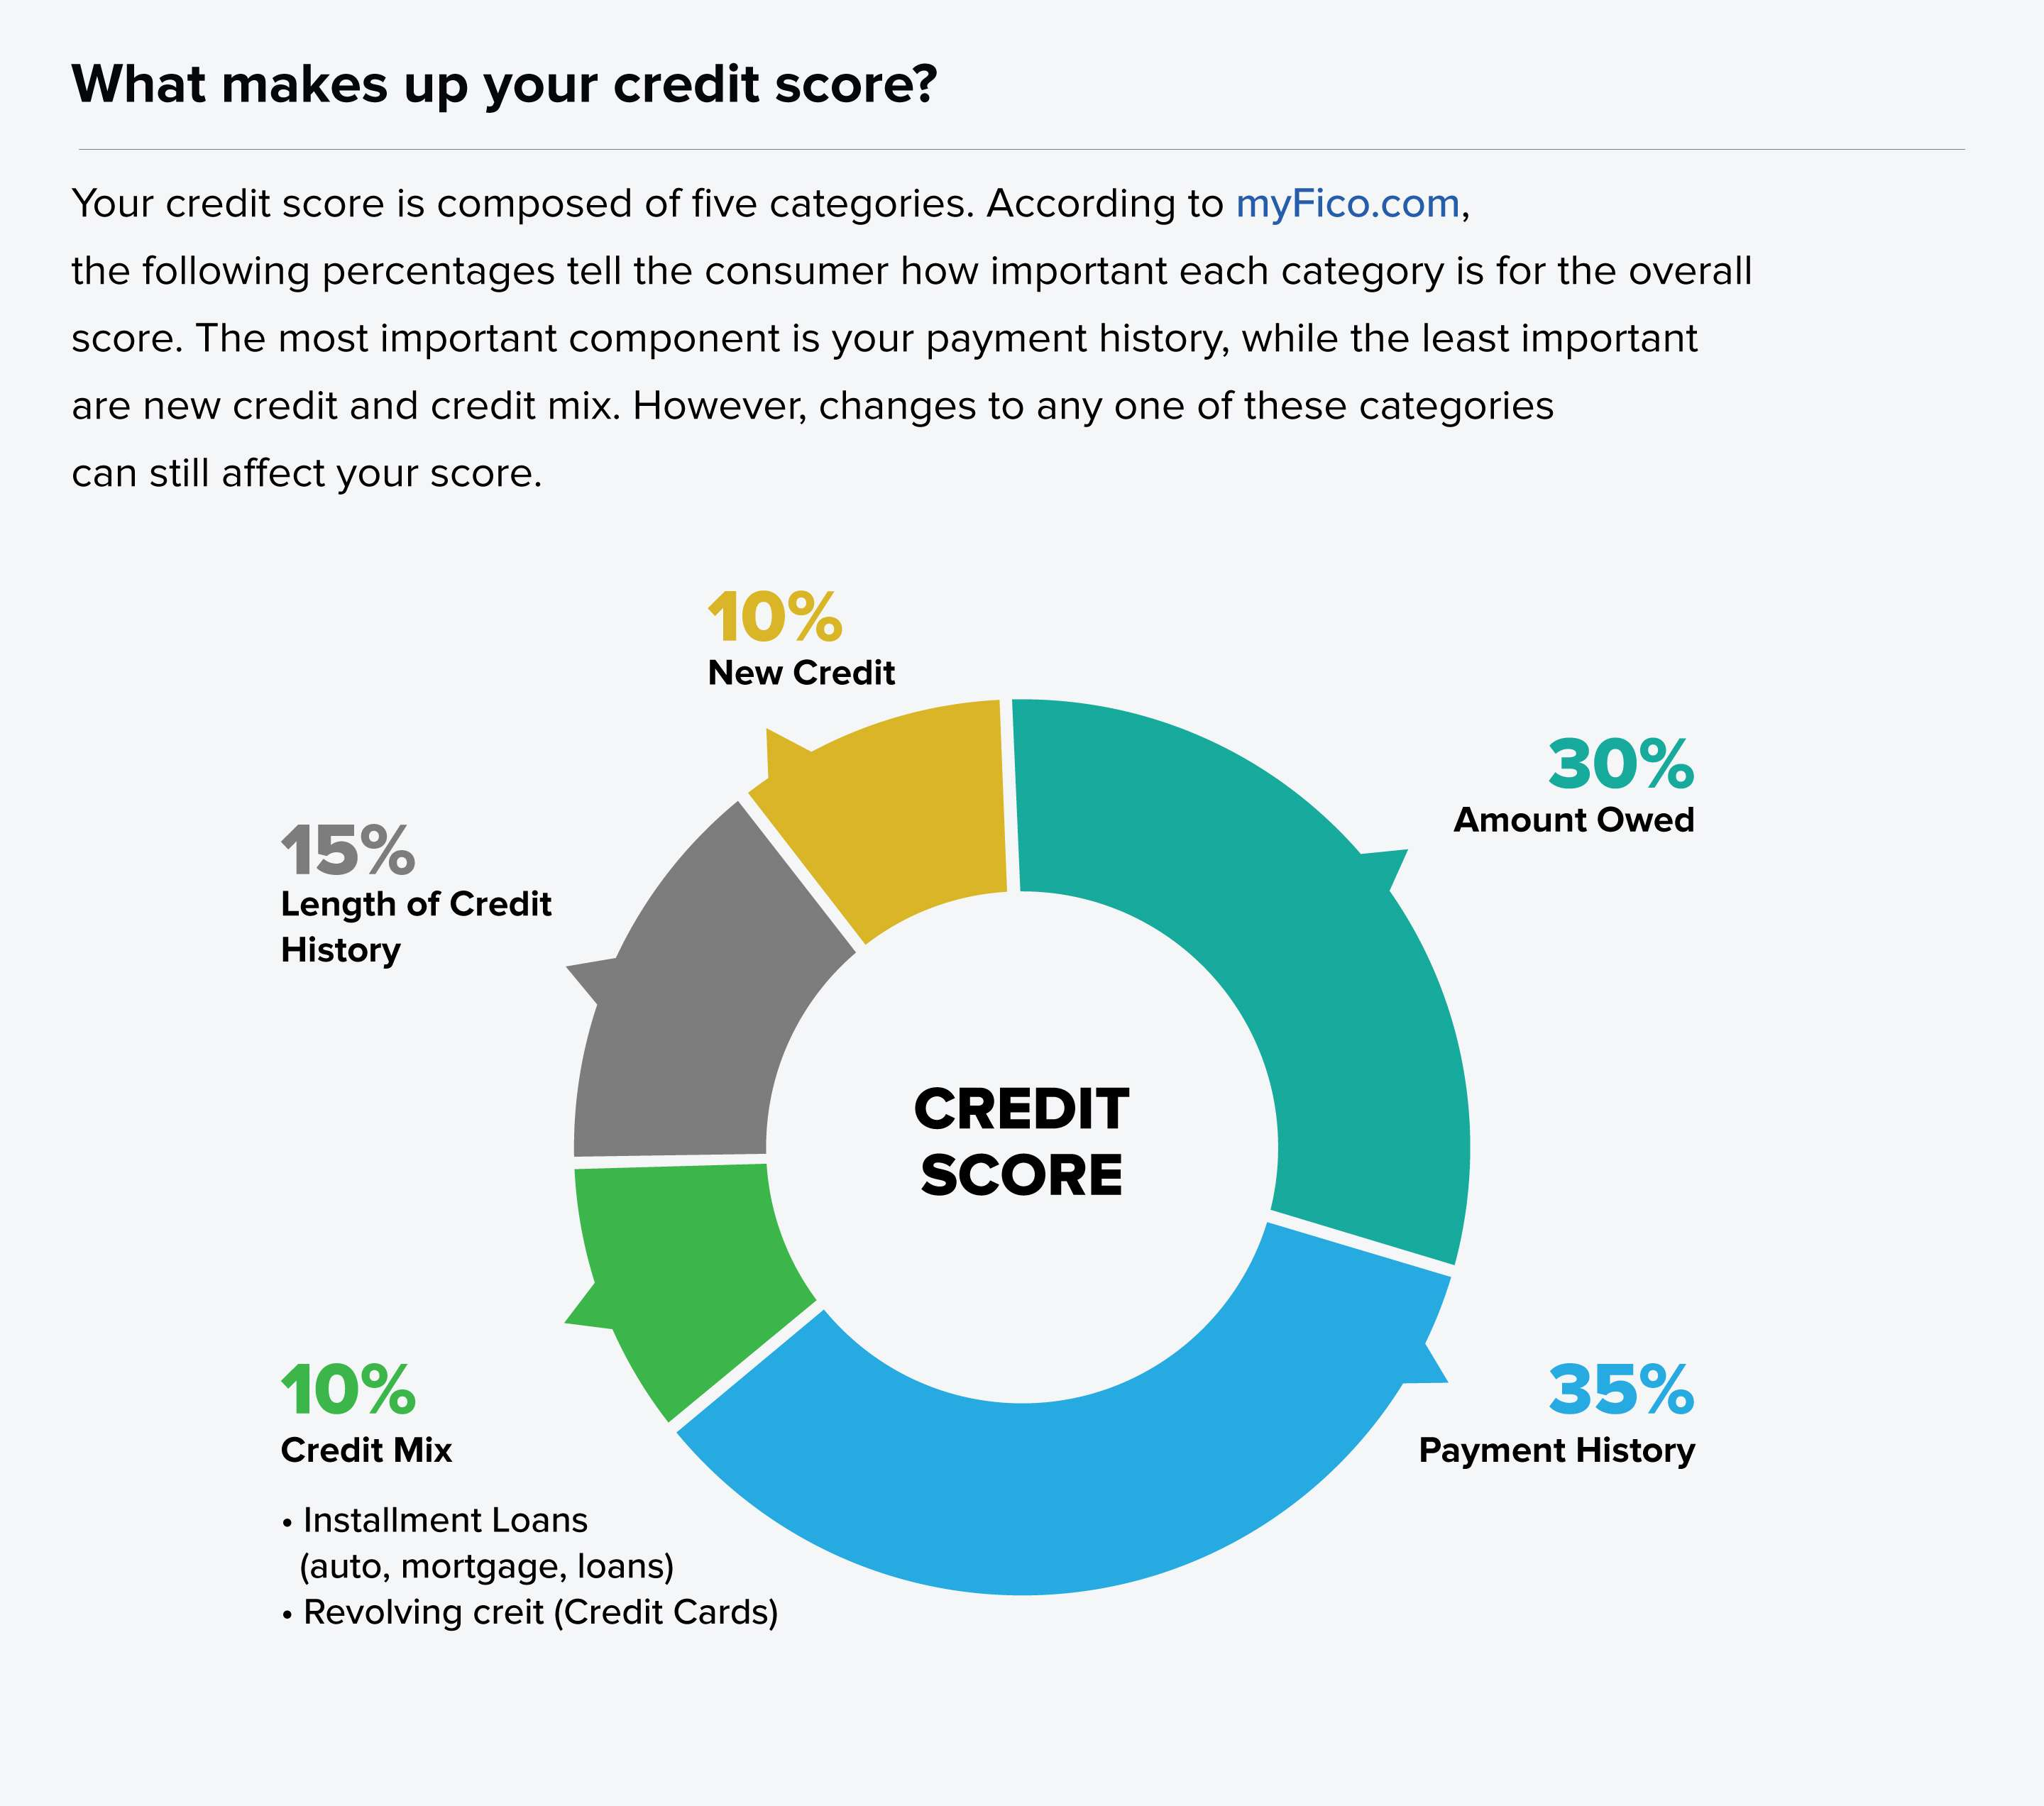 What makes up your credit score graphic showing 5 categories: amount owed, new credit, length of credit history, credit mix, and payment history.